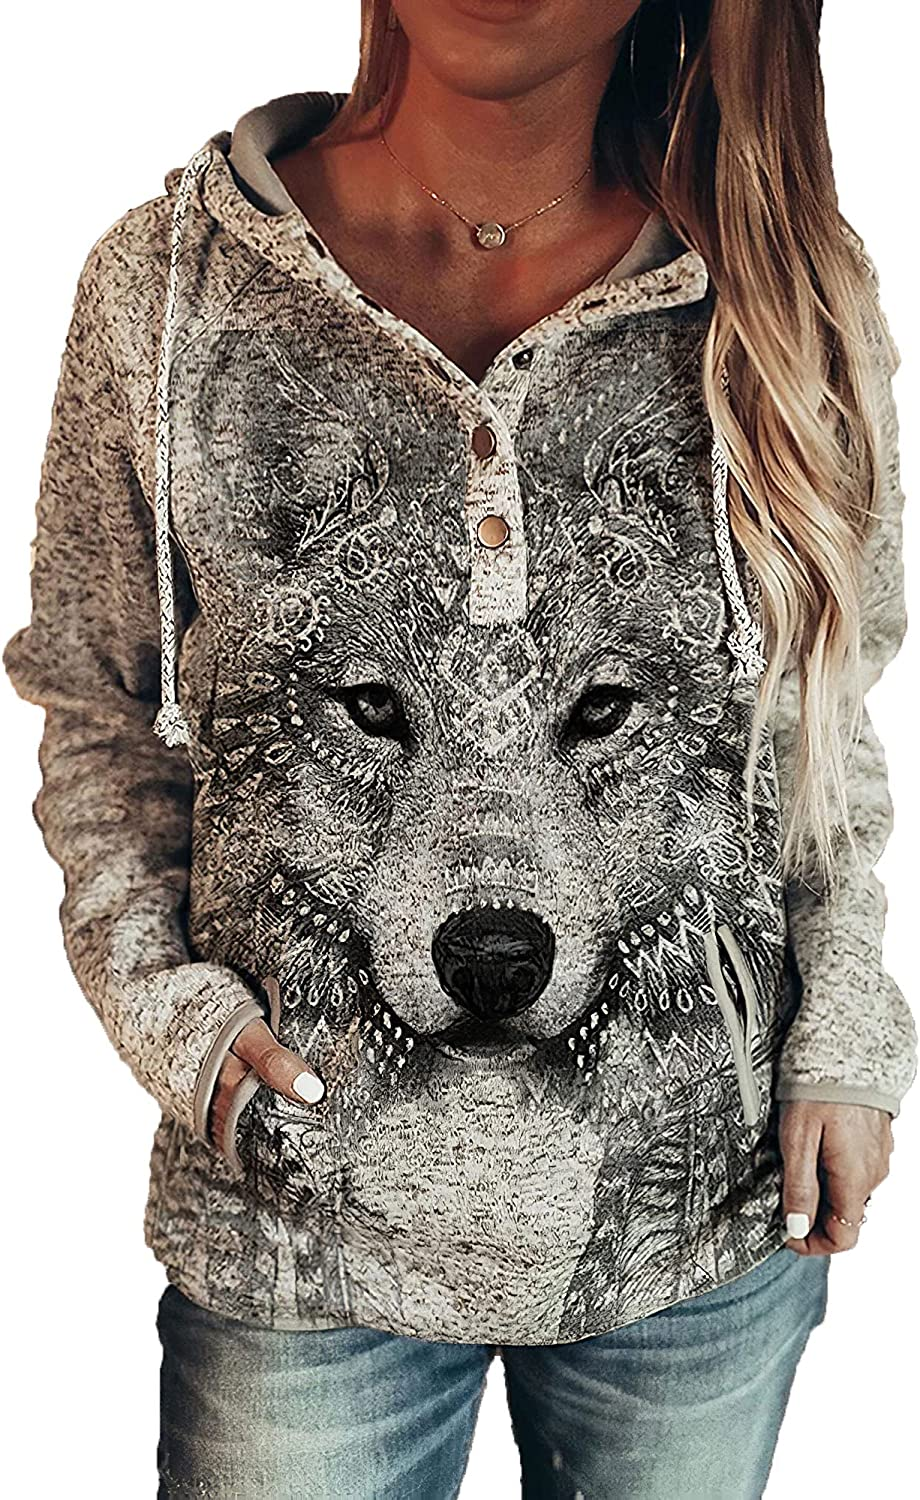 Akivide Wolf Hoodies for Women Aztec Animal Print Casual Button Drawstring Hooded Sweatshirt with Pockets